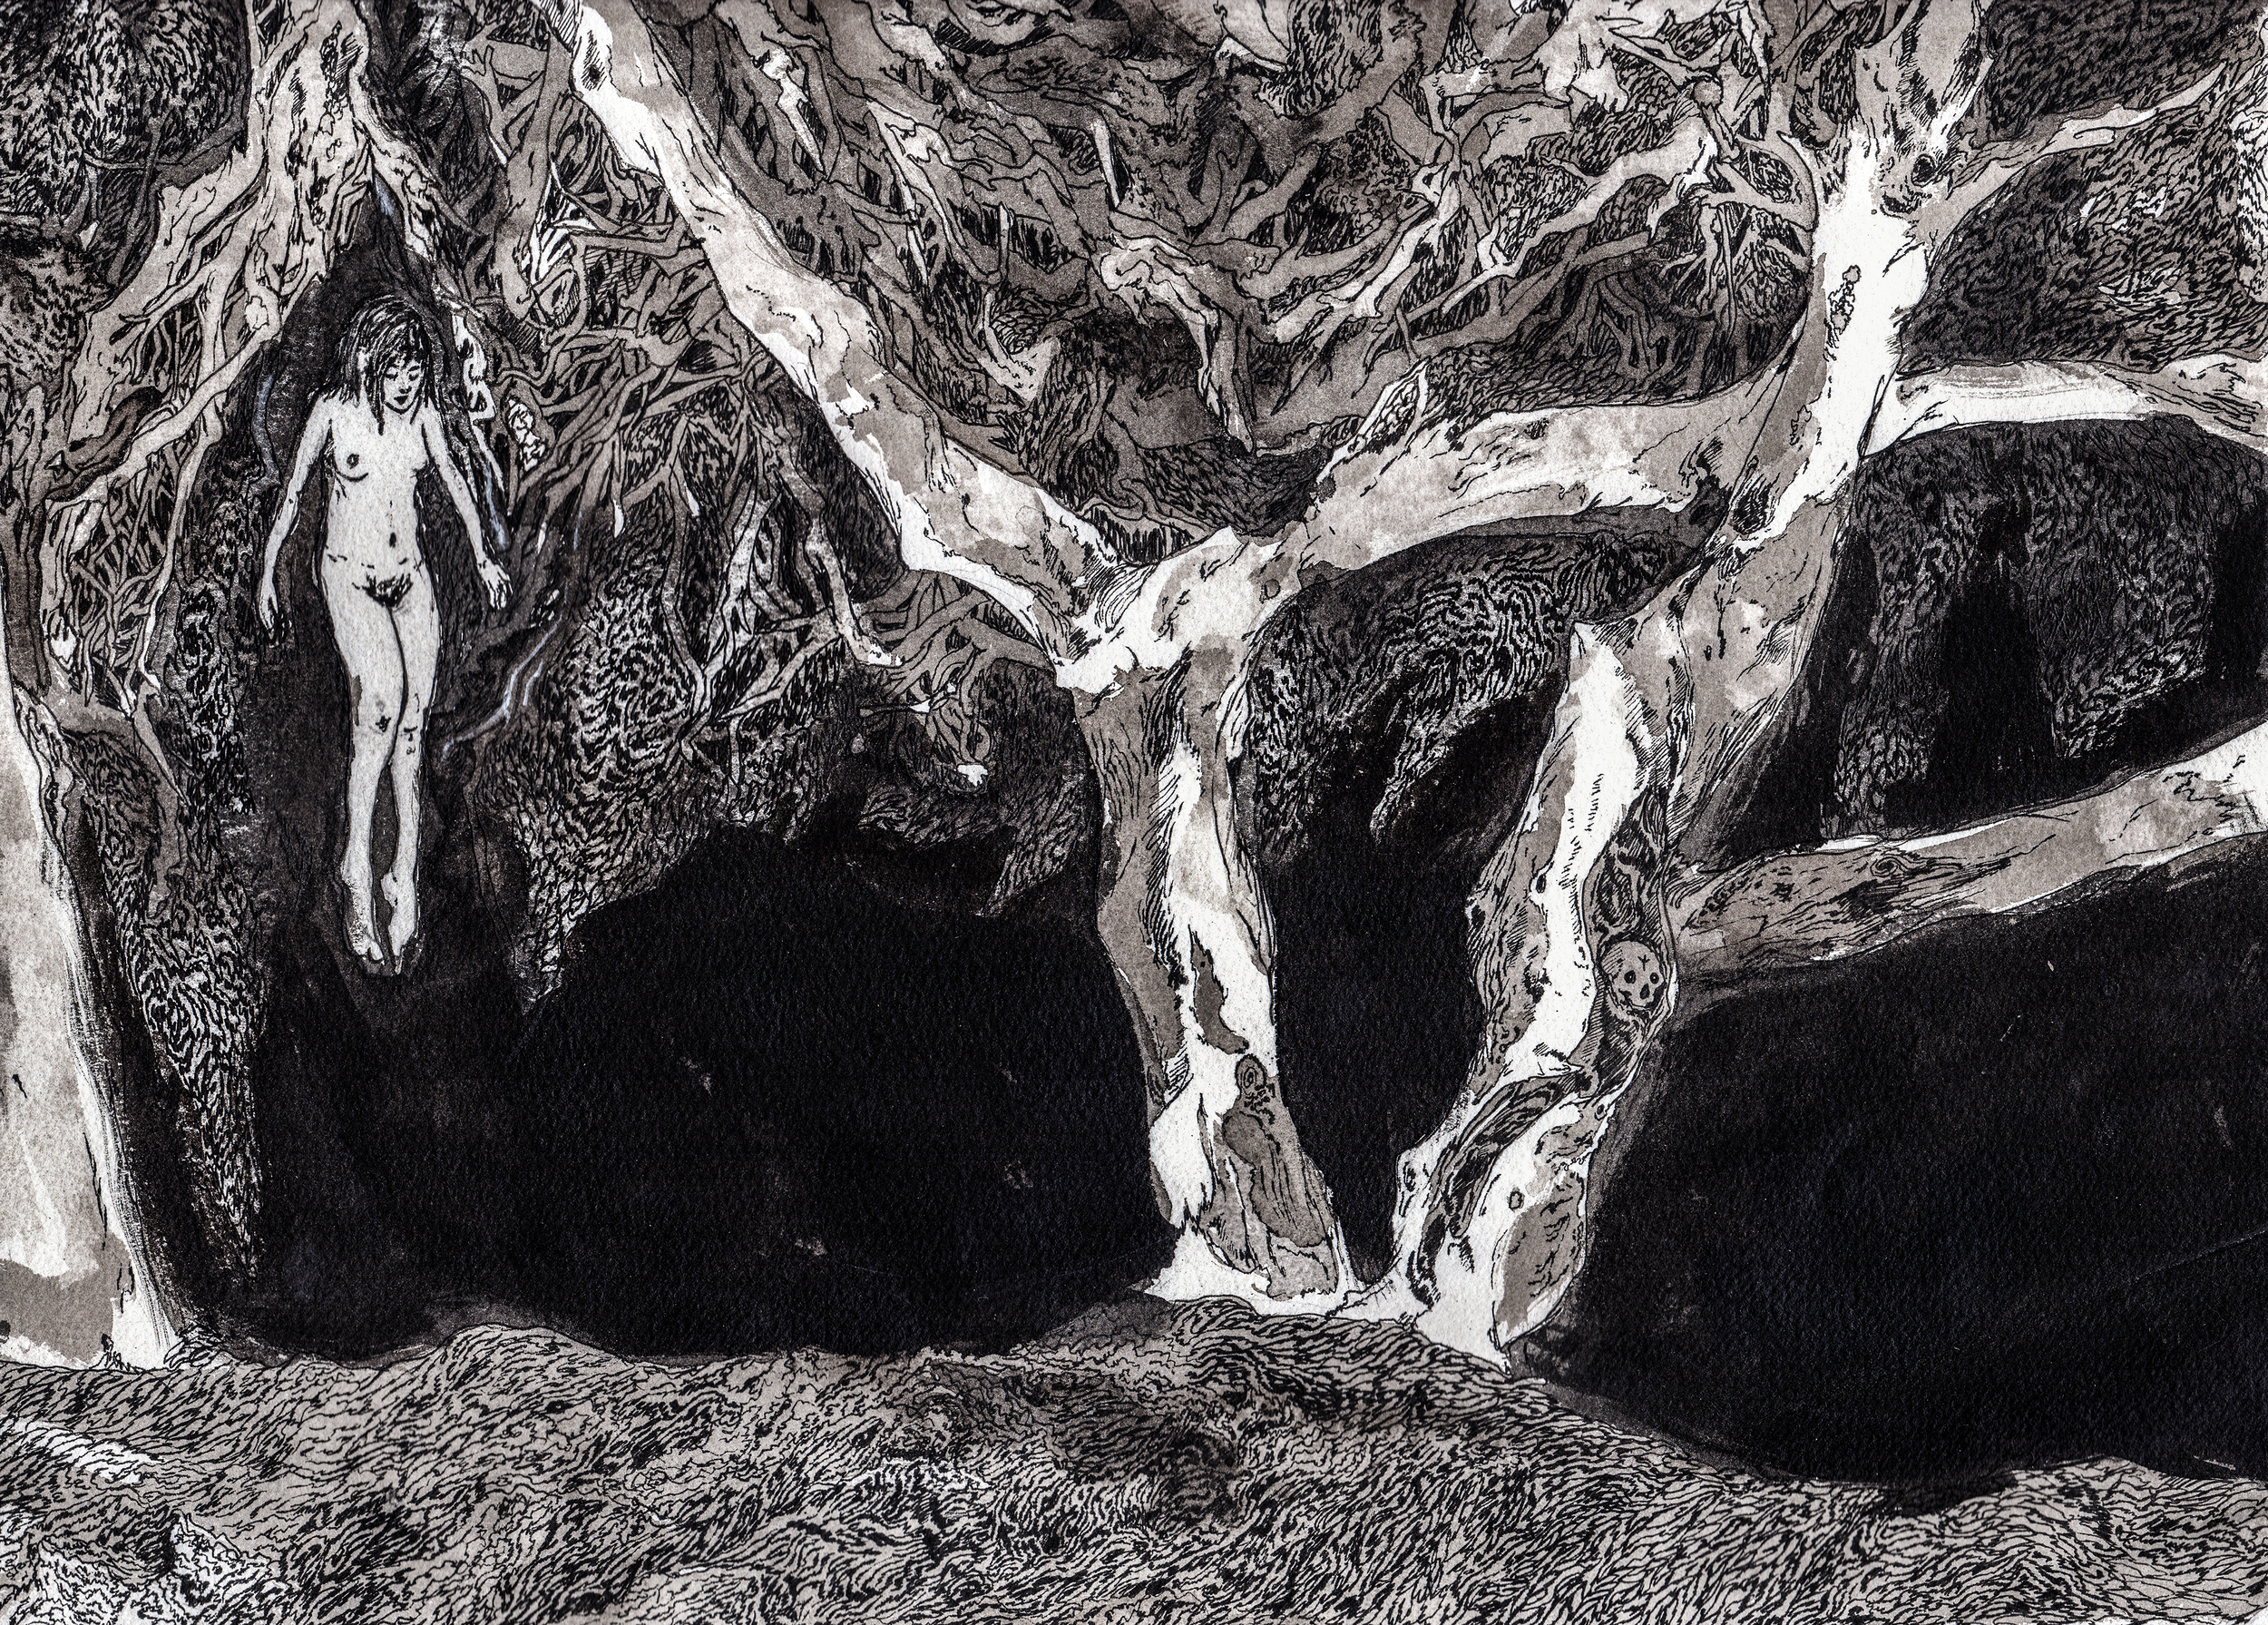 Eternal Return.  2014. 21 x 16 inches. Ink wash on paper.